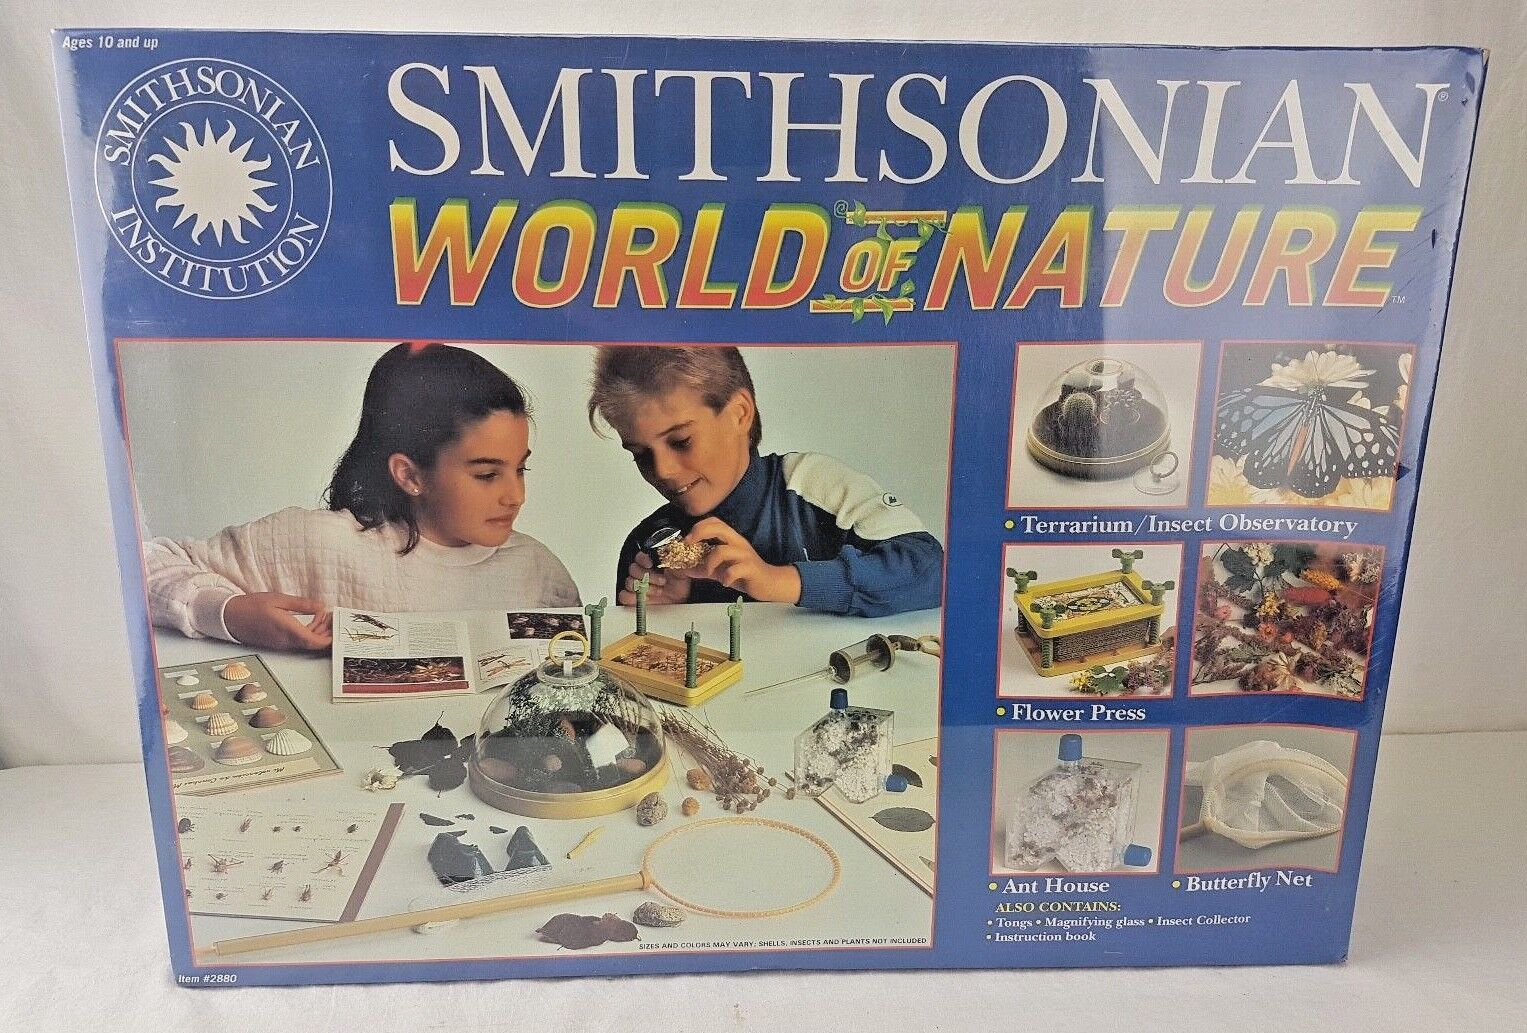 NEW Vintage Smithsonian World of Nature - NOS - 2880 Insects/Flower Press/Ant